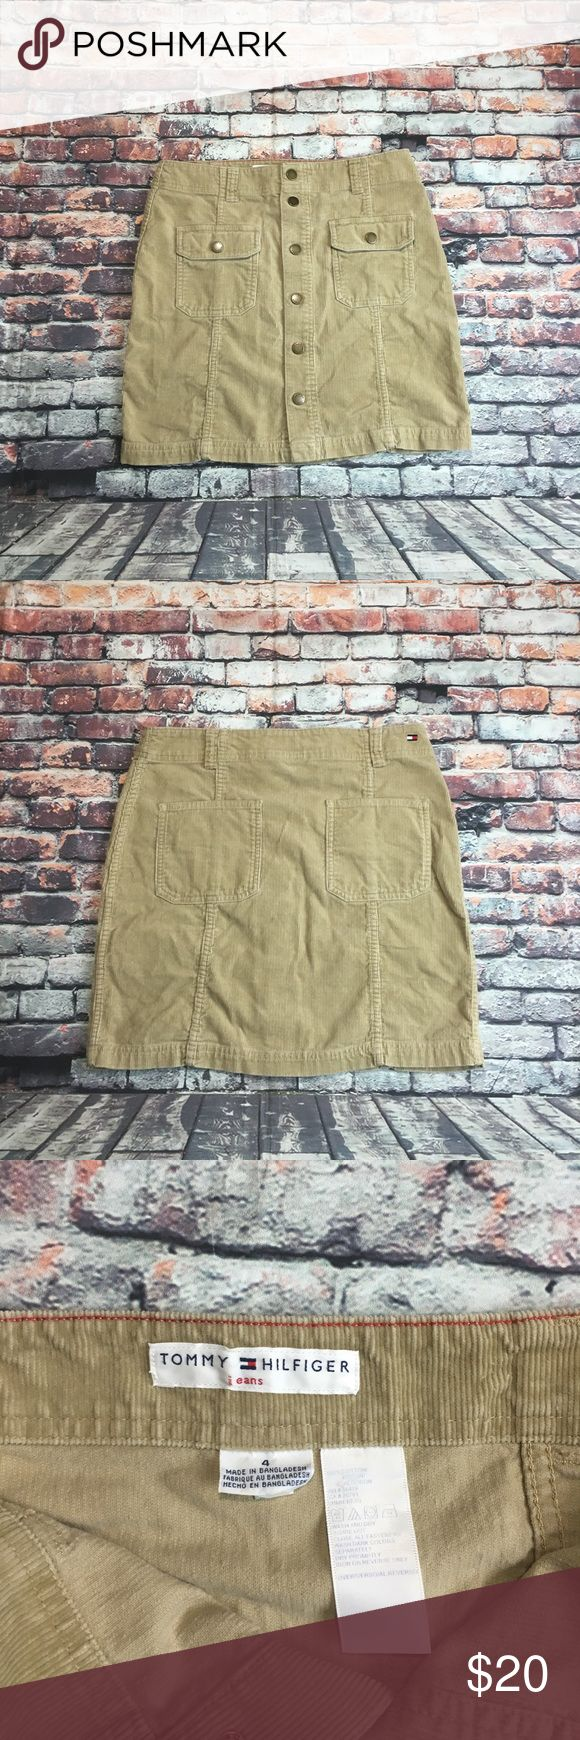 Tommy Hilfiger Corduroy Mini Skirt Women's Size 4 Preowned Women's Tommy Hilfiger Corduroy Mini Skirt Women's Size 4 it has the logo button down two back pockets tommy logo on right back color Khaki 100% Cotton Nonsmoking Home perfect condition see pictures for measurements!!! Tommy Hilfiger Skirts Mini